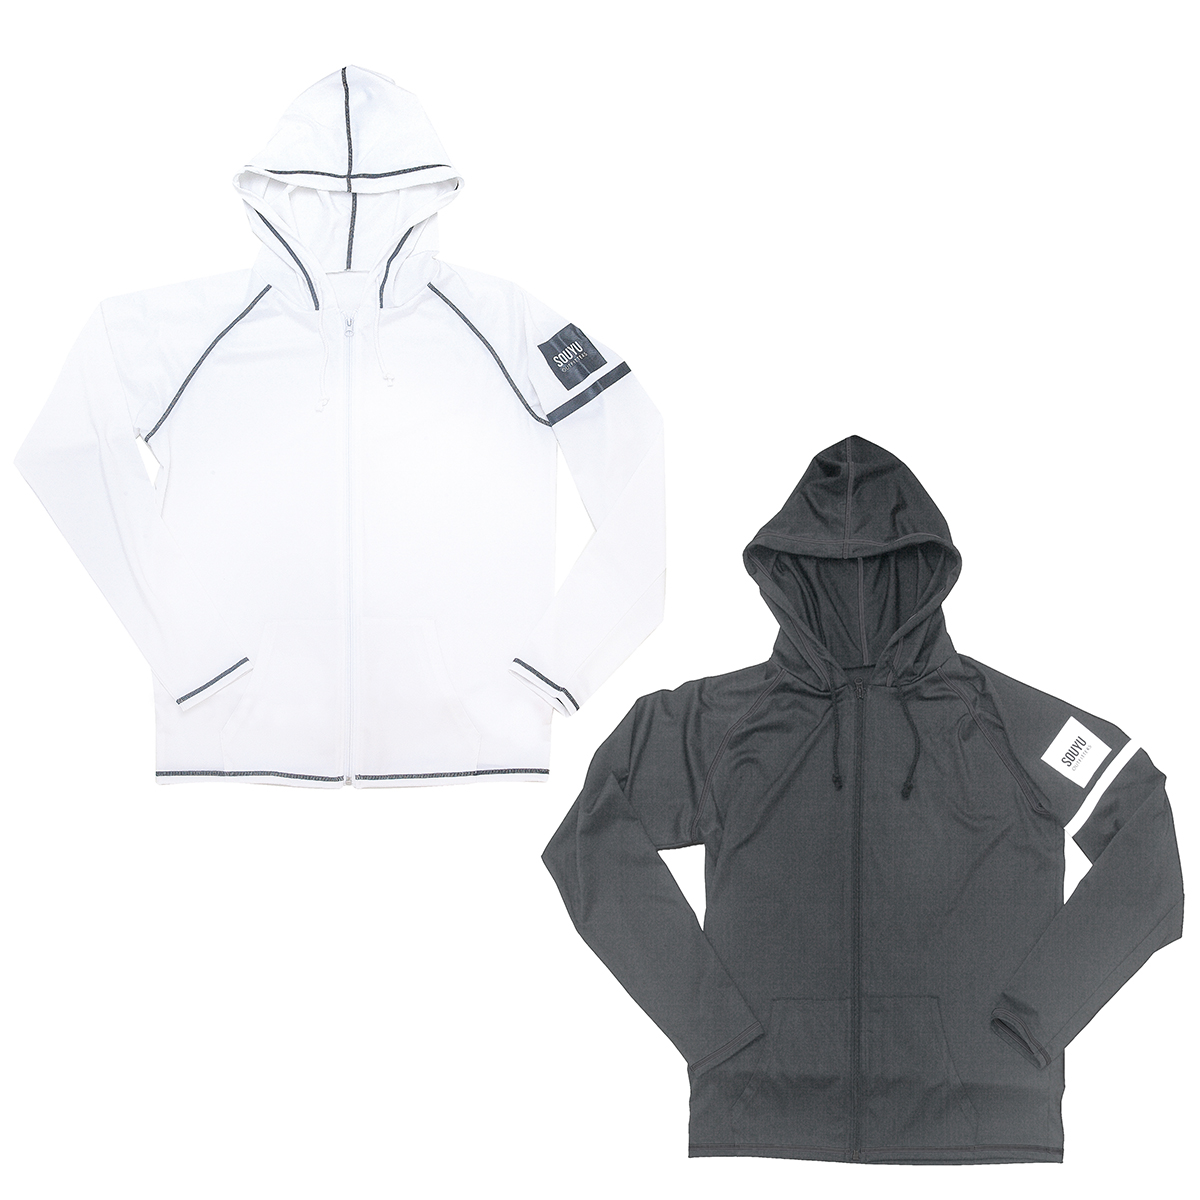 RASH HOODIE ラッシュフード Number : s20-so-04 Fabric : Polyester 87% PU 13% Size : XS, S, M, L, XL Color:White, Black Price : ¥7,800